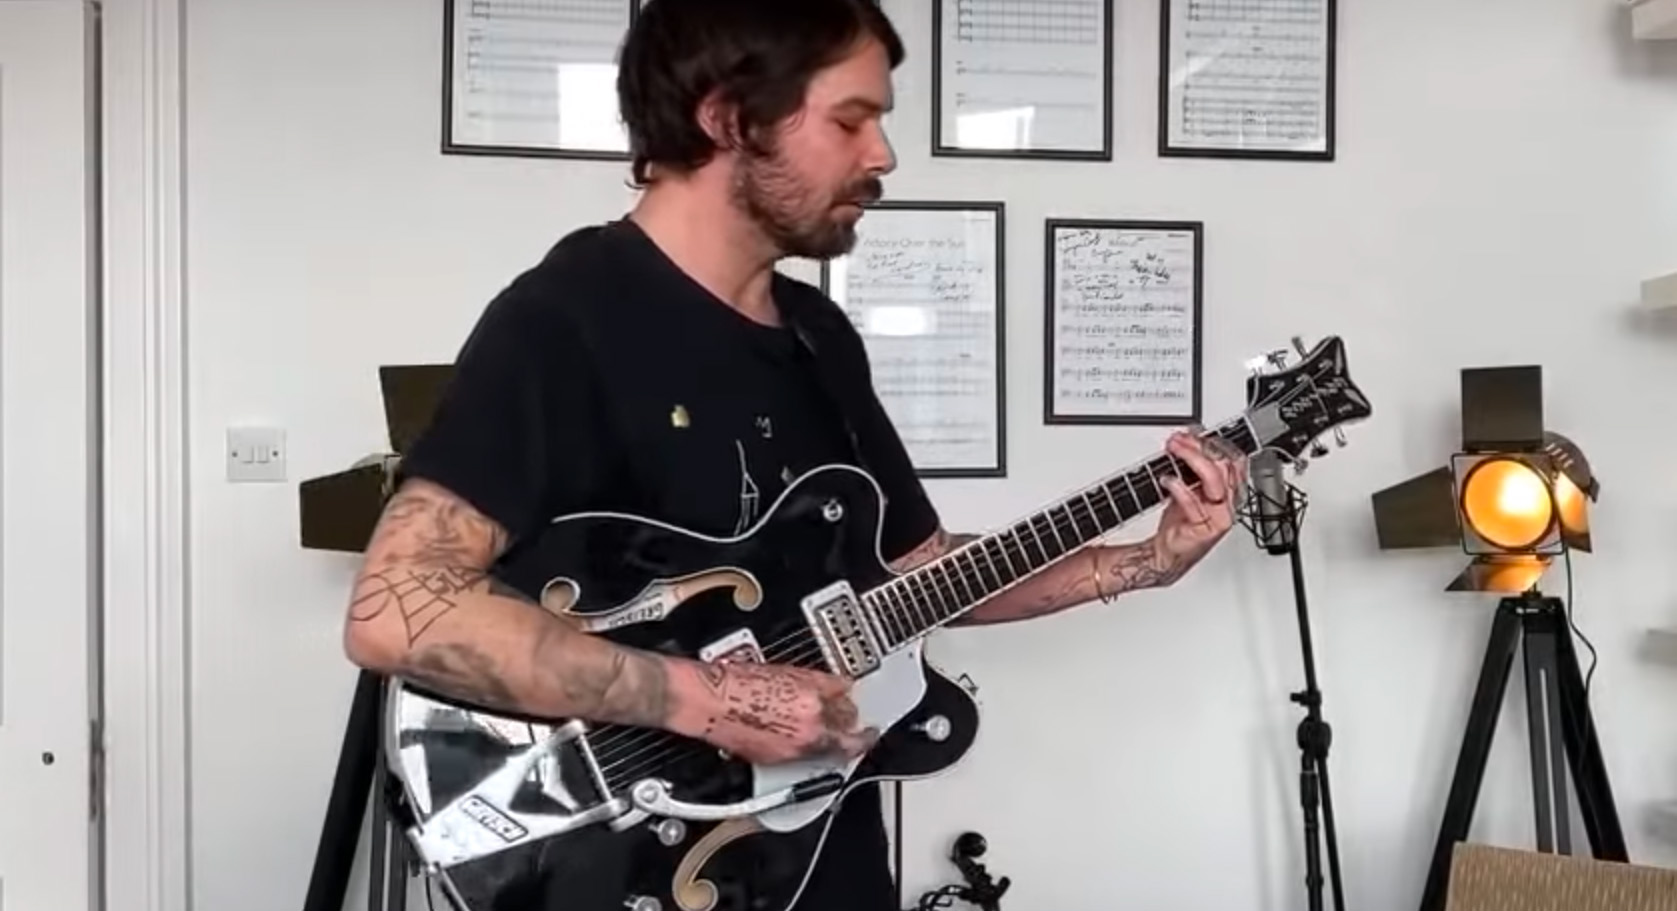 Watch Biffy Clyro's Simon Neil Stay Home and Jam Session